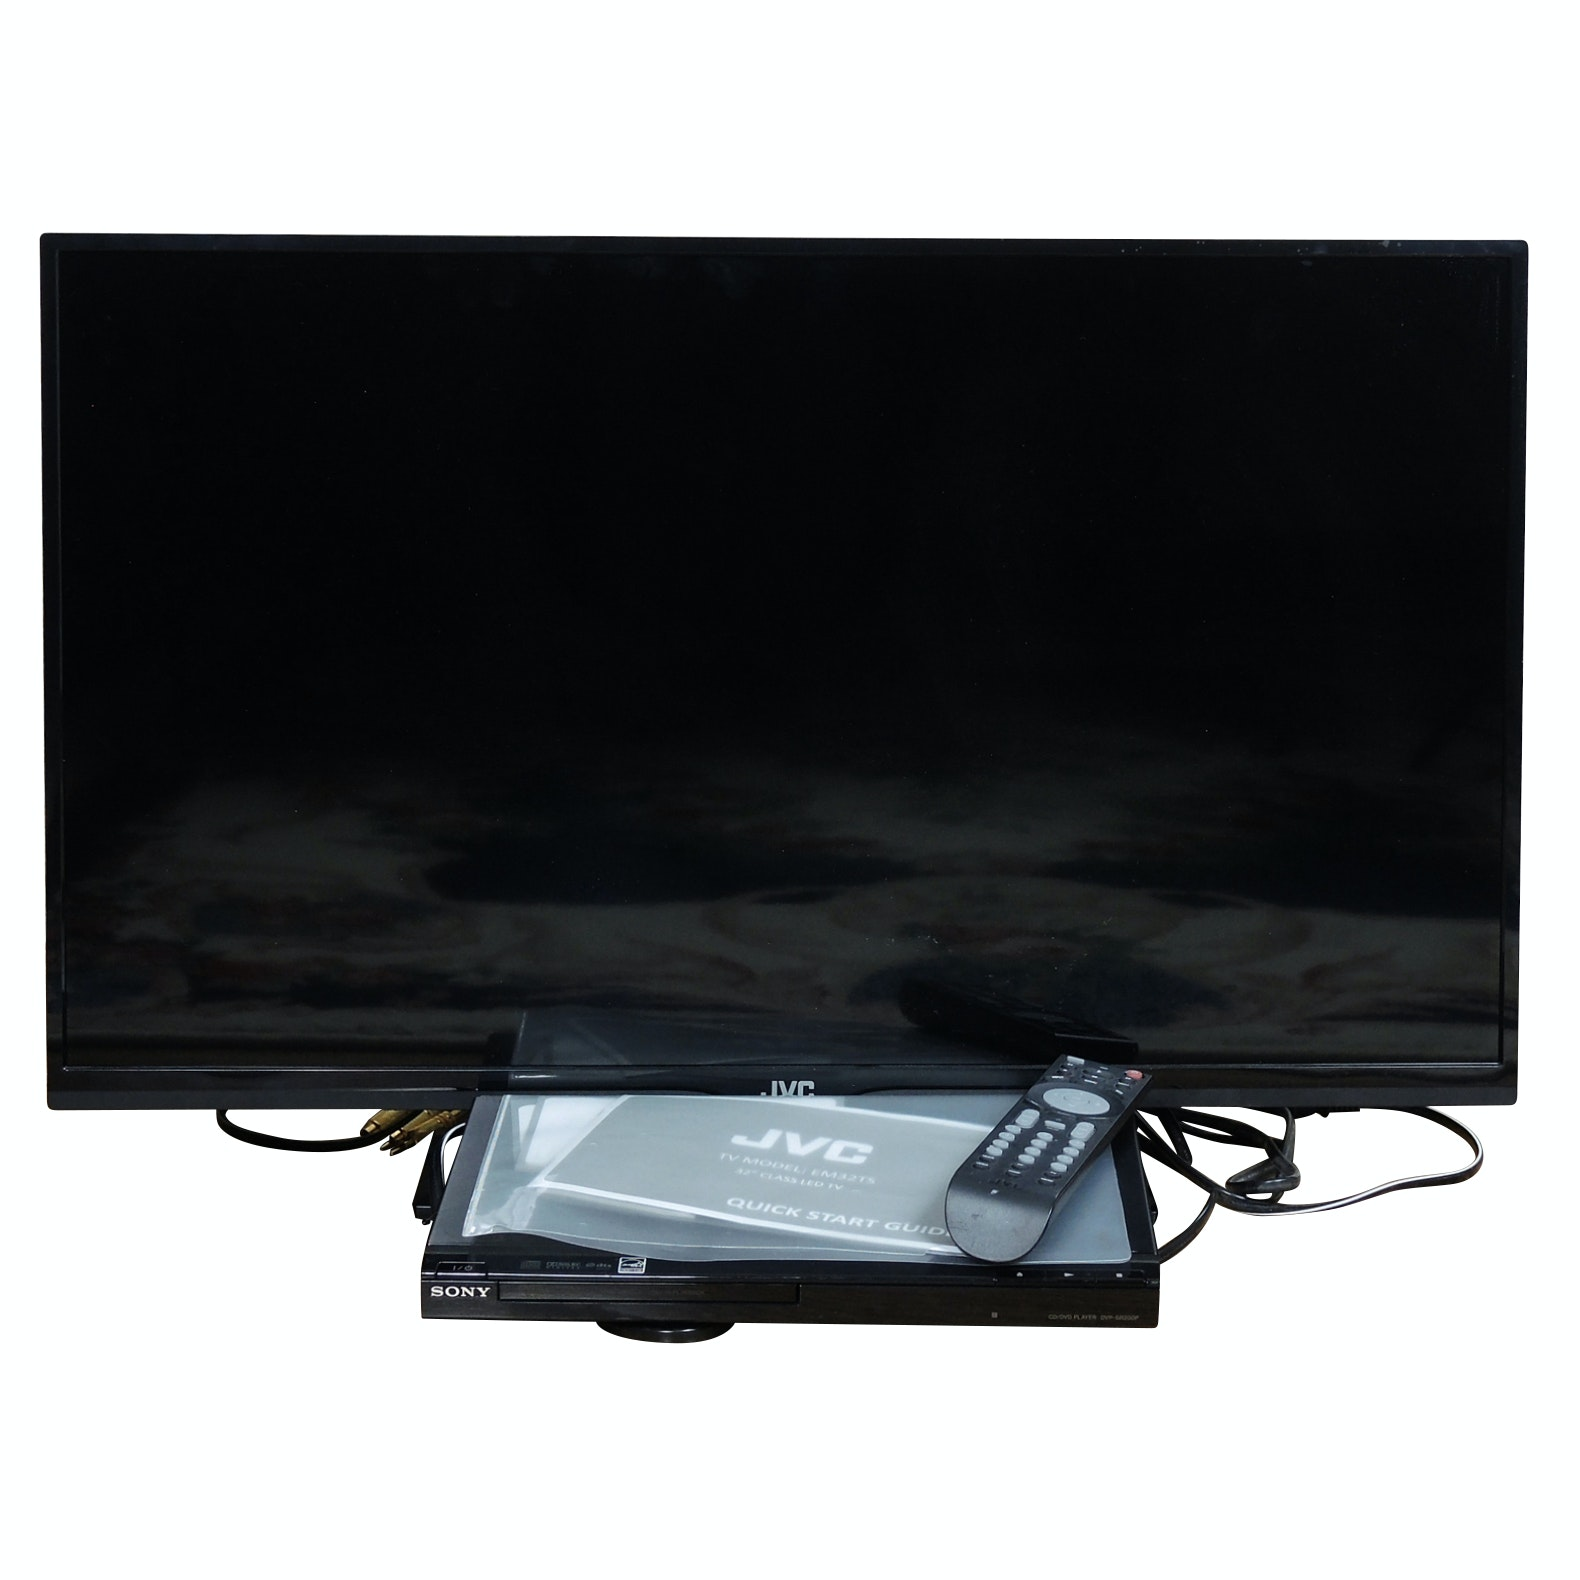 "JVC 32"" Television and Sony CD/DVD Player"